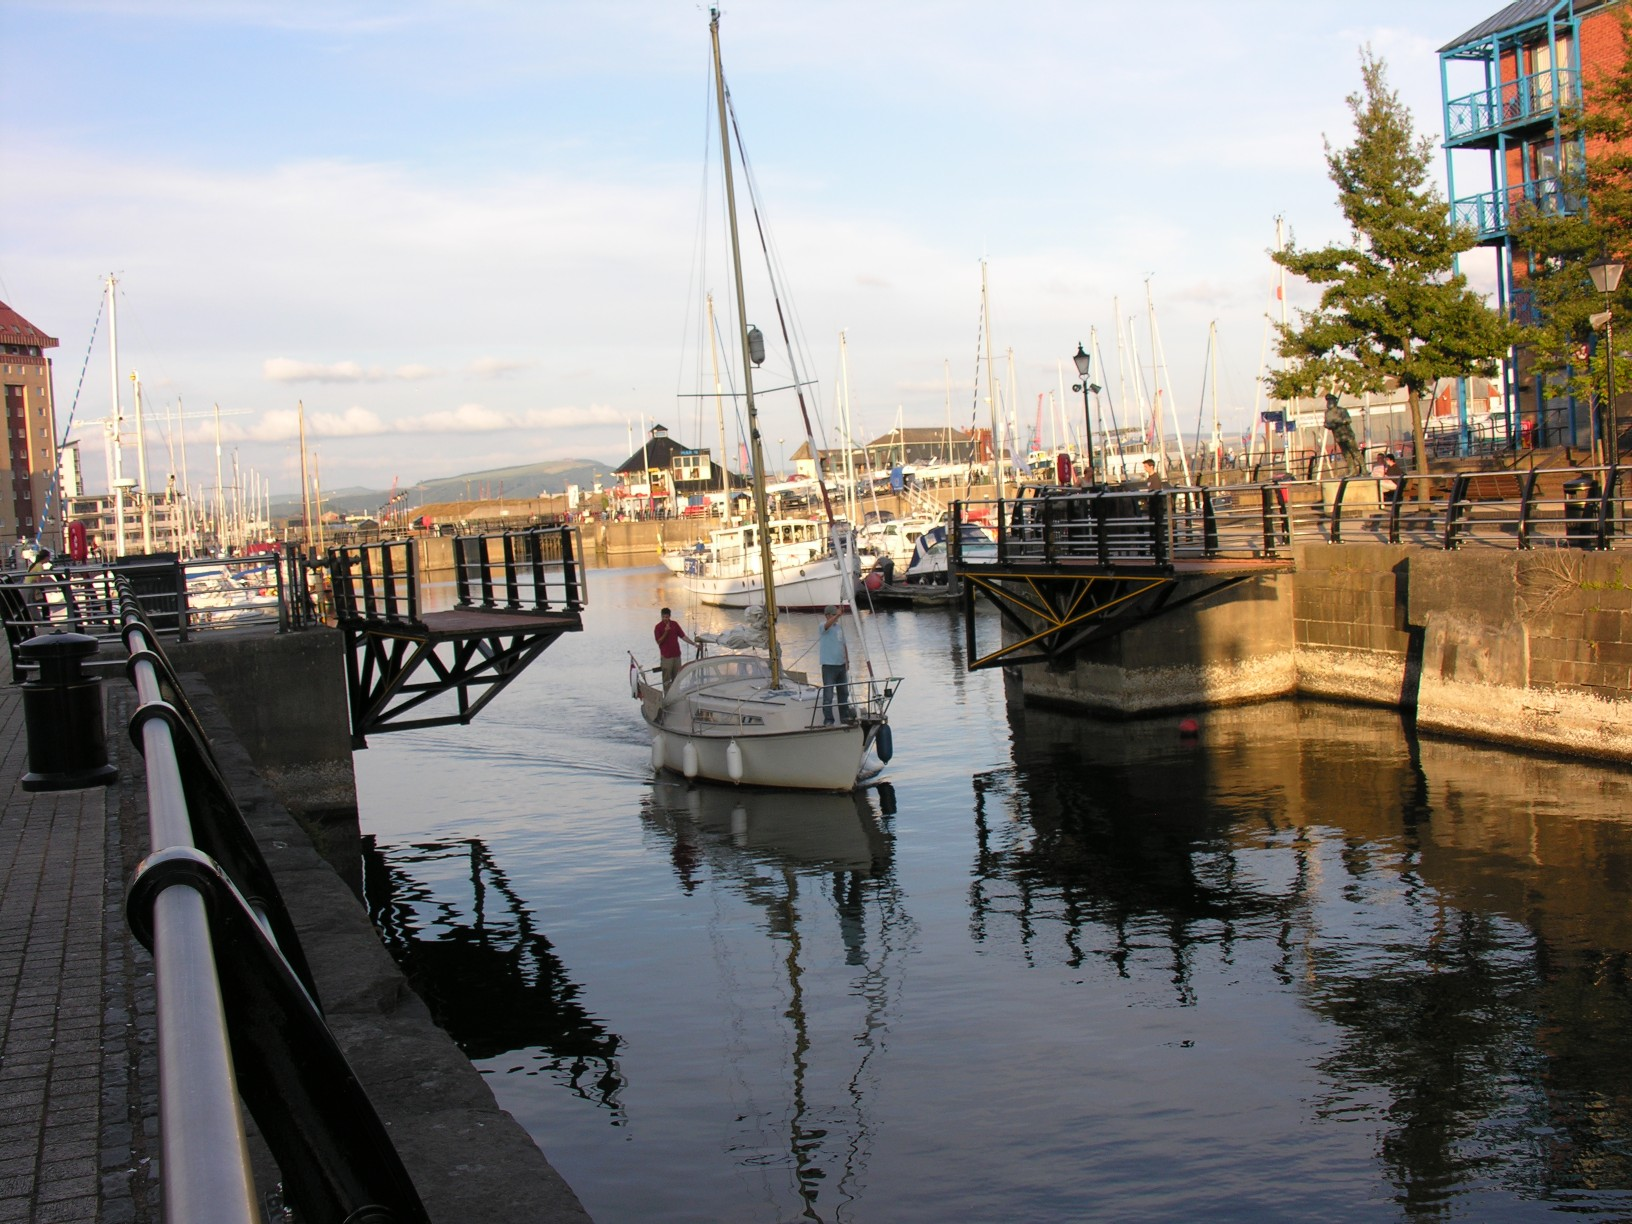 Coming home, Boats, Bspo06, Harbour, Sail, HQ Photo